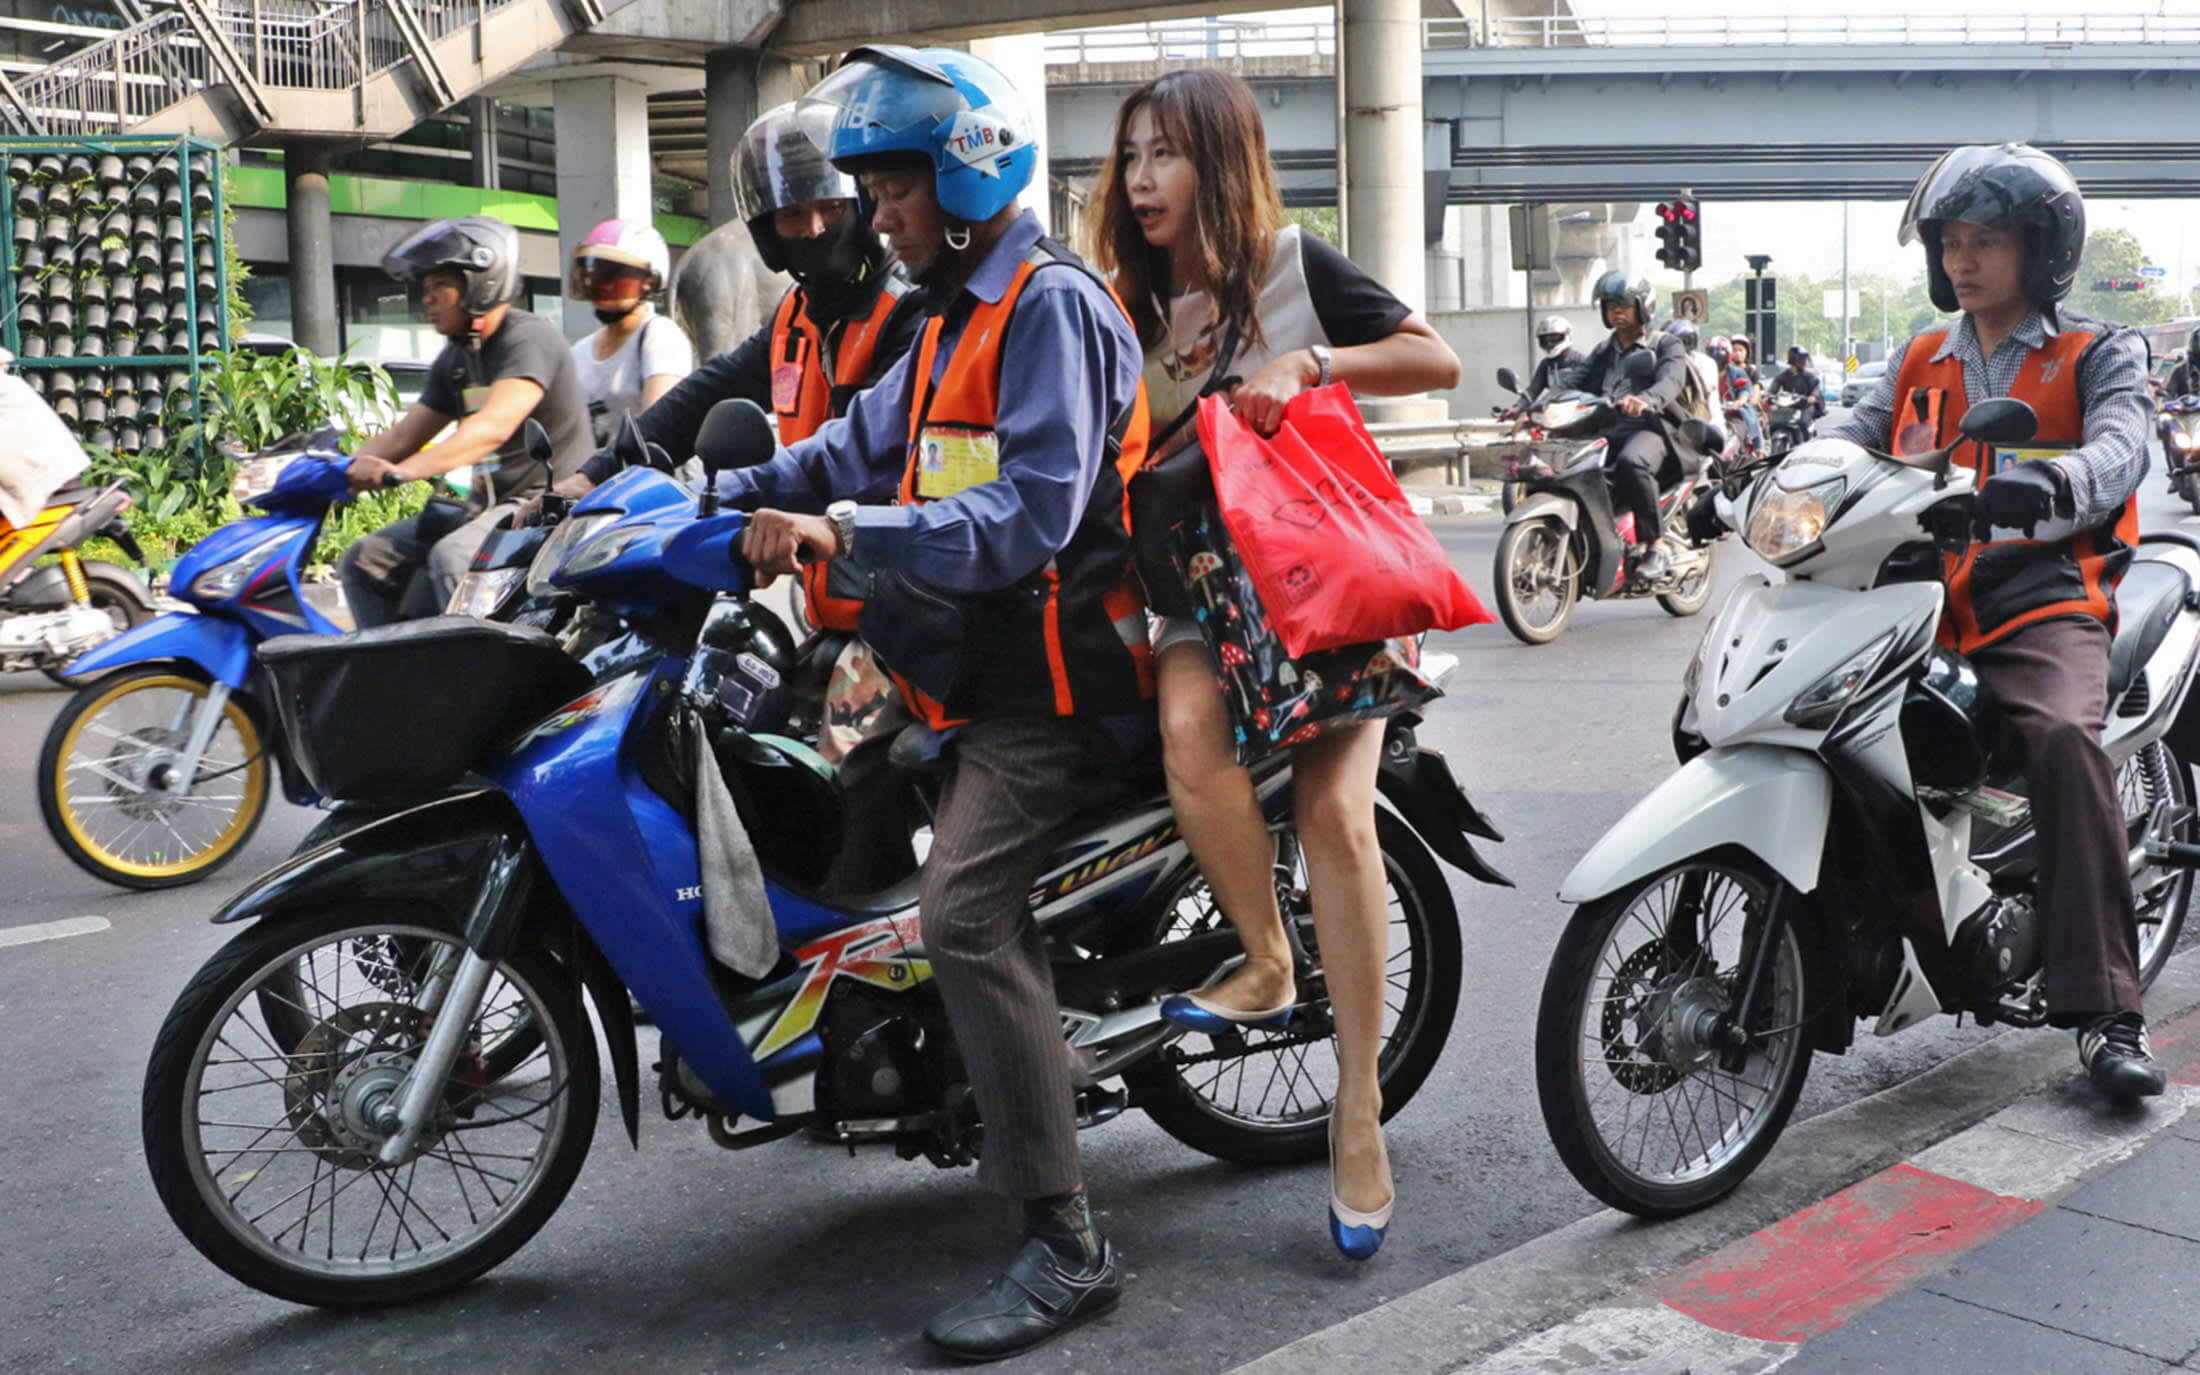 motorbikes - common transportation for individuals